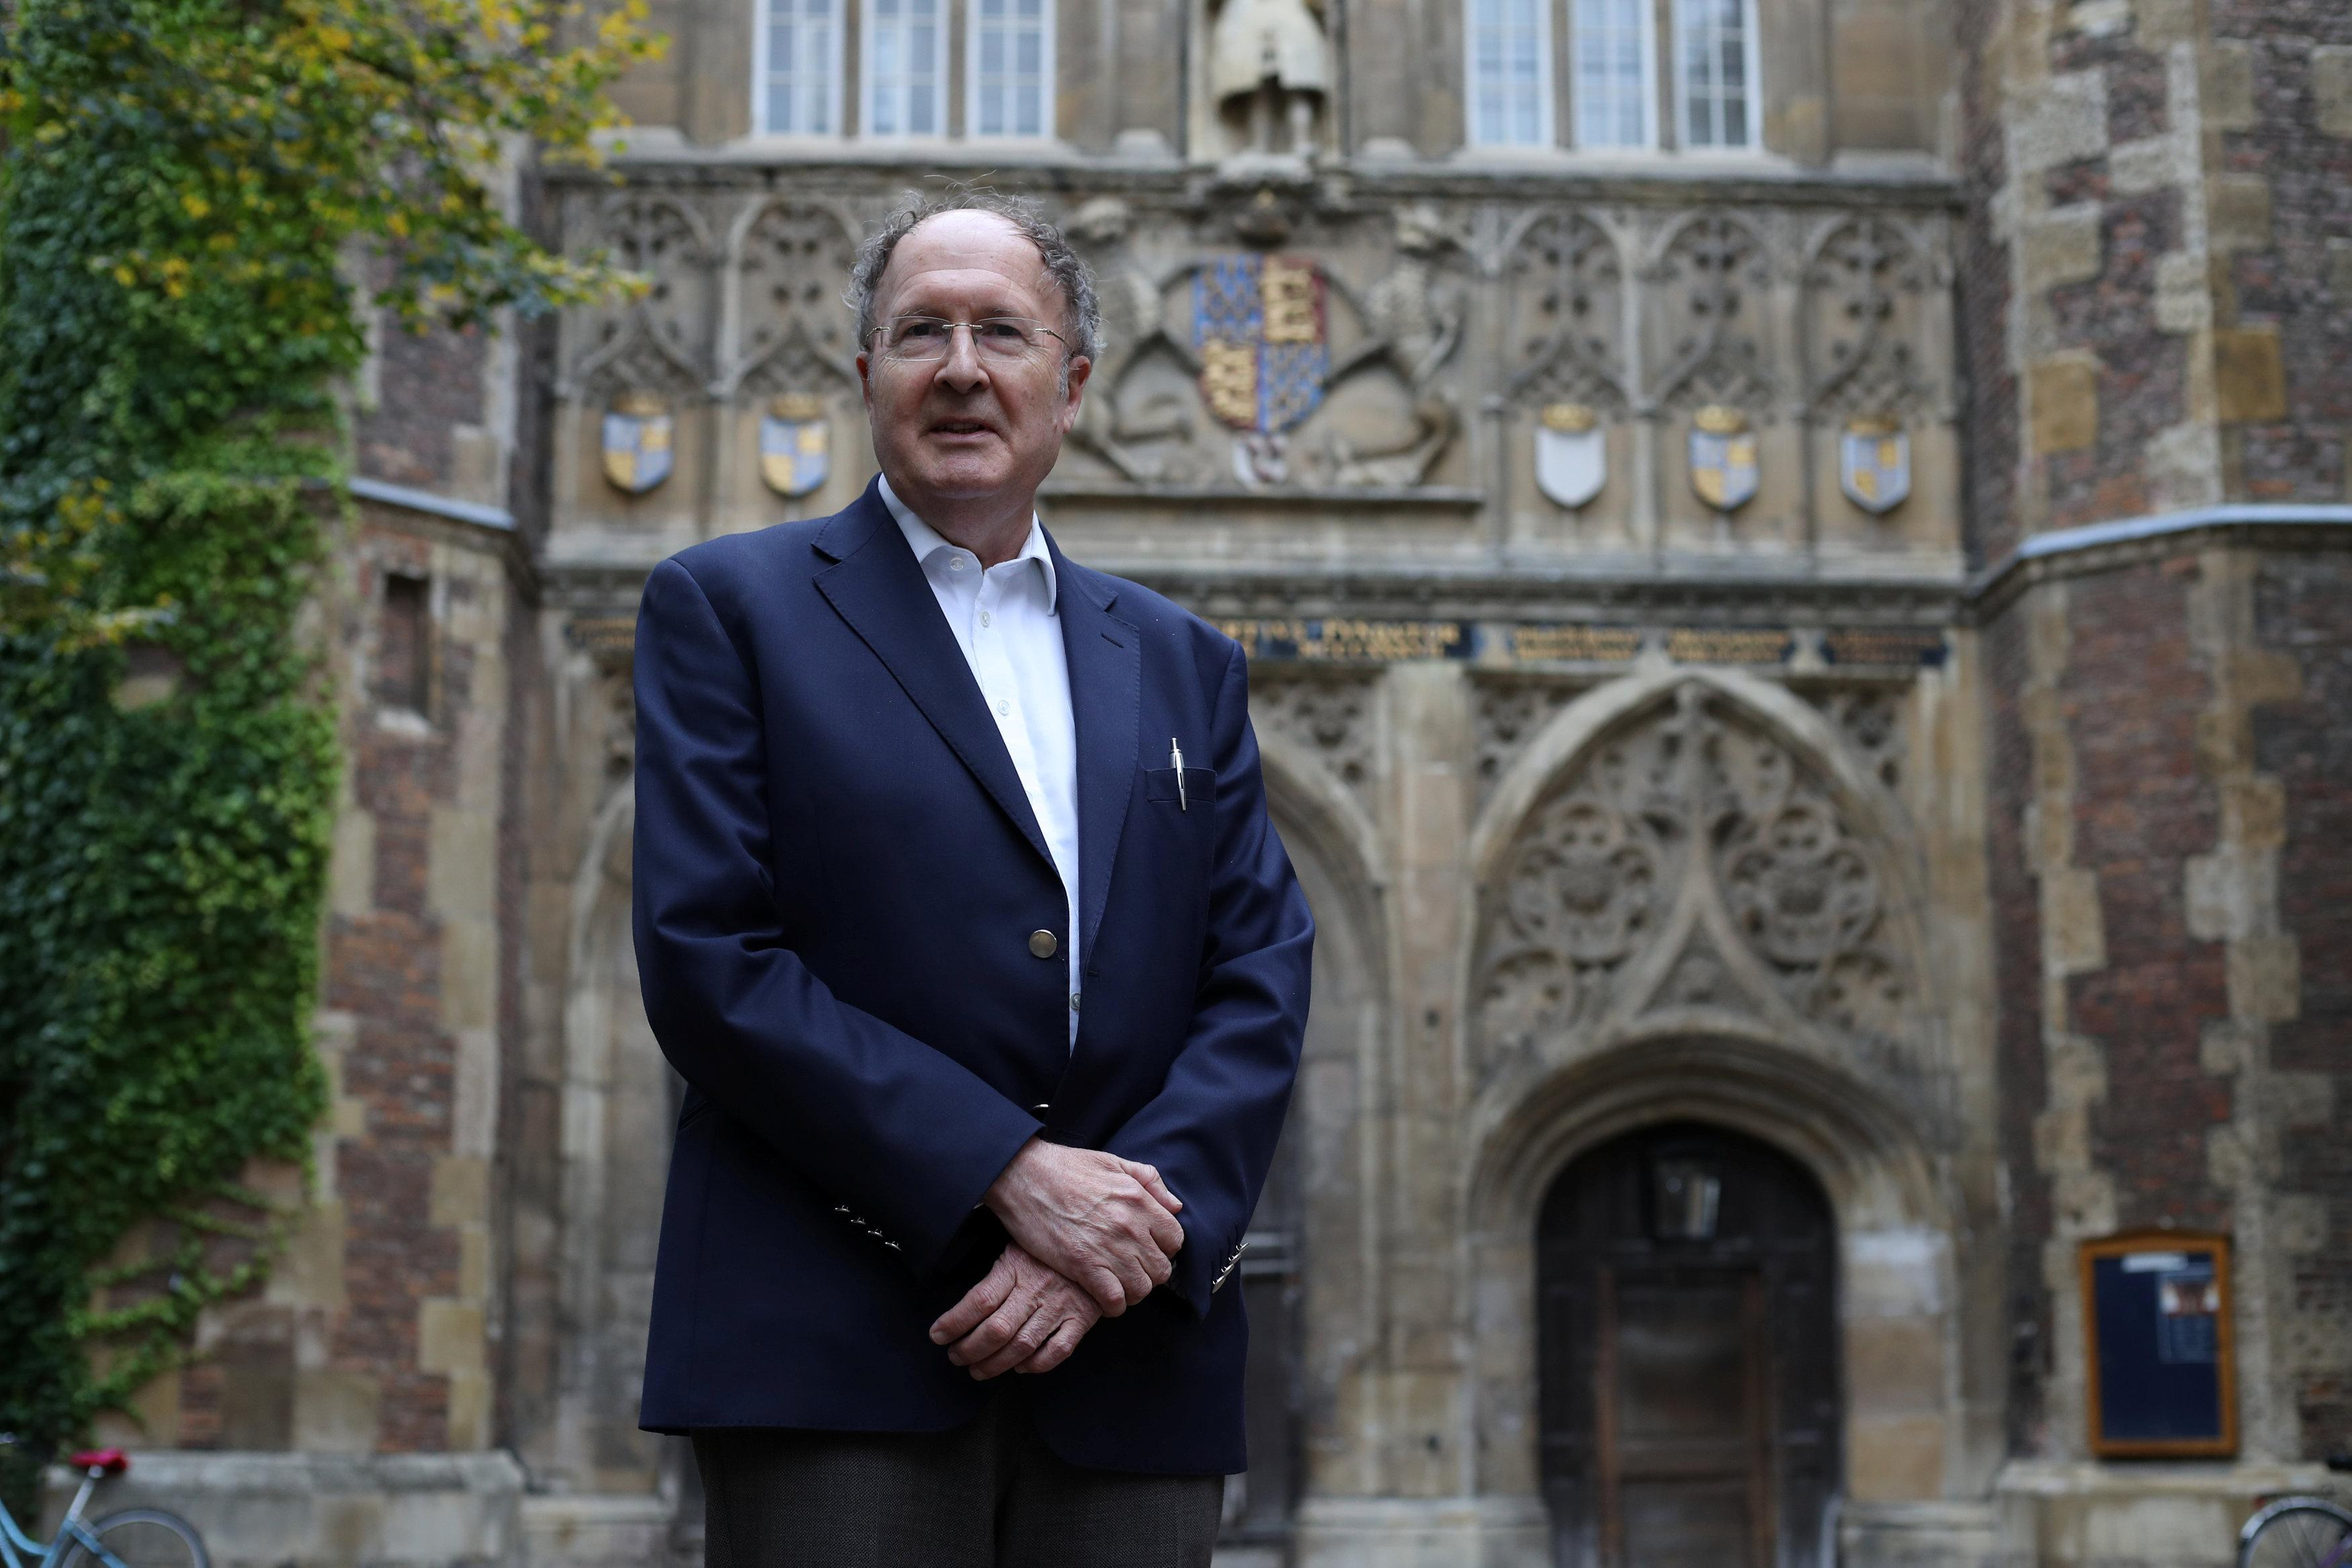 Gregory Winter, poses for photographs after being awarded the Noble Prize for Chemistry, outside Trinity College Cambridge, Britain, October 3, 2018. Chris Radburn